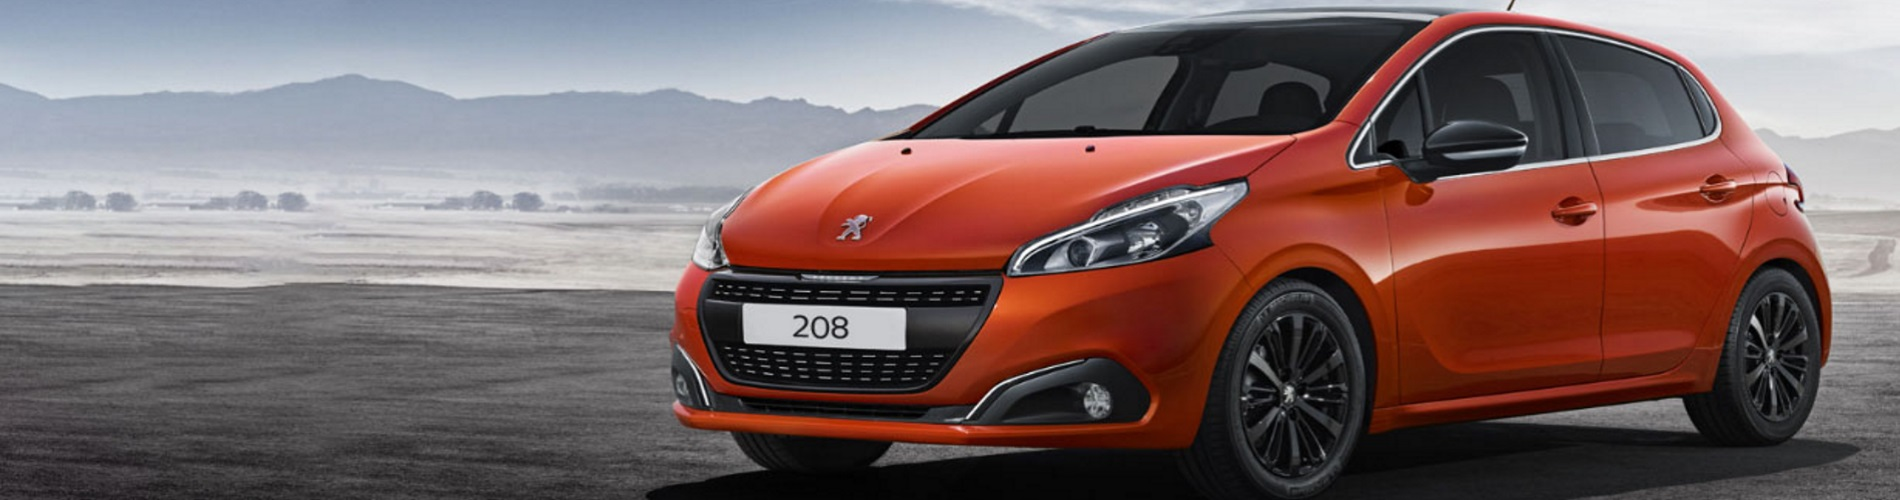 Peugeot 208 Wycliffe Peugeot Rugby